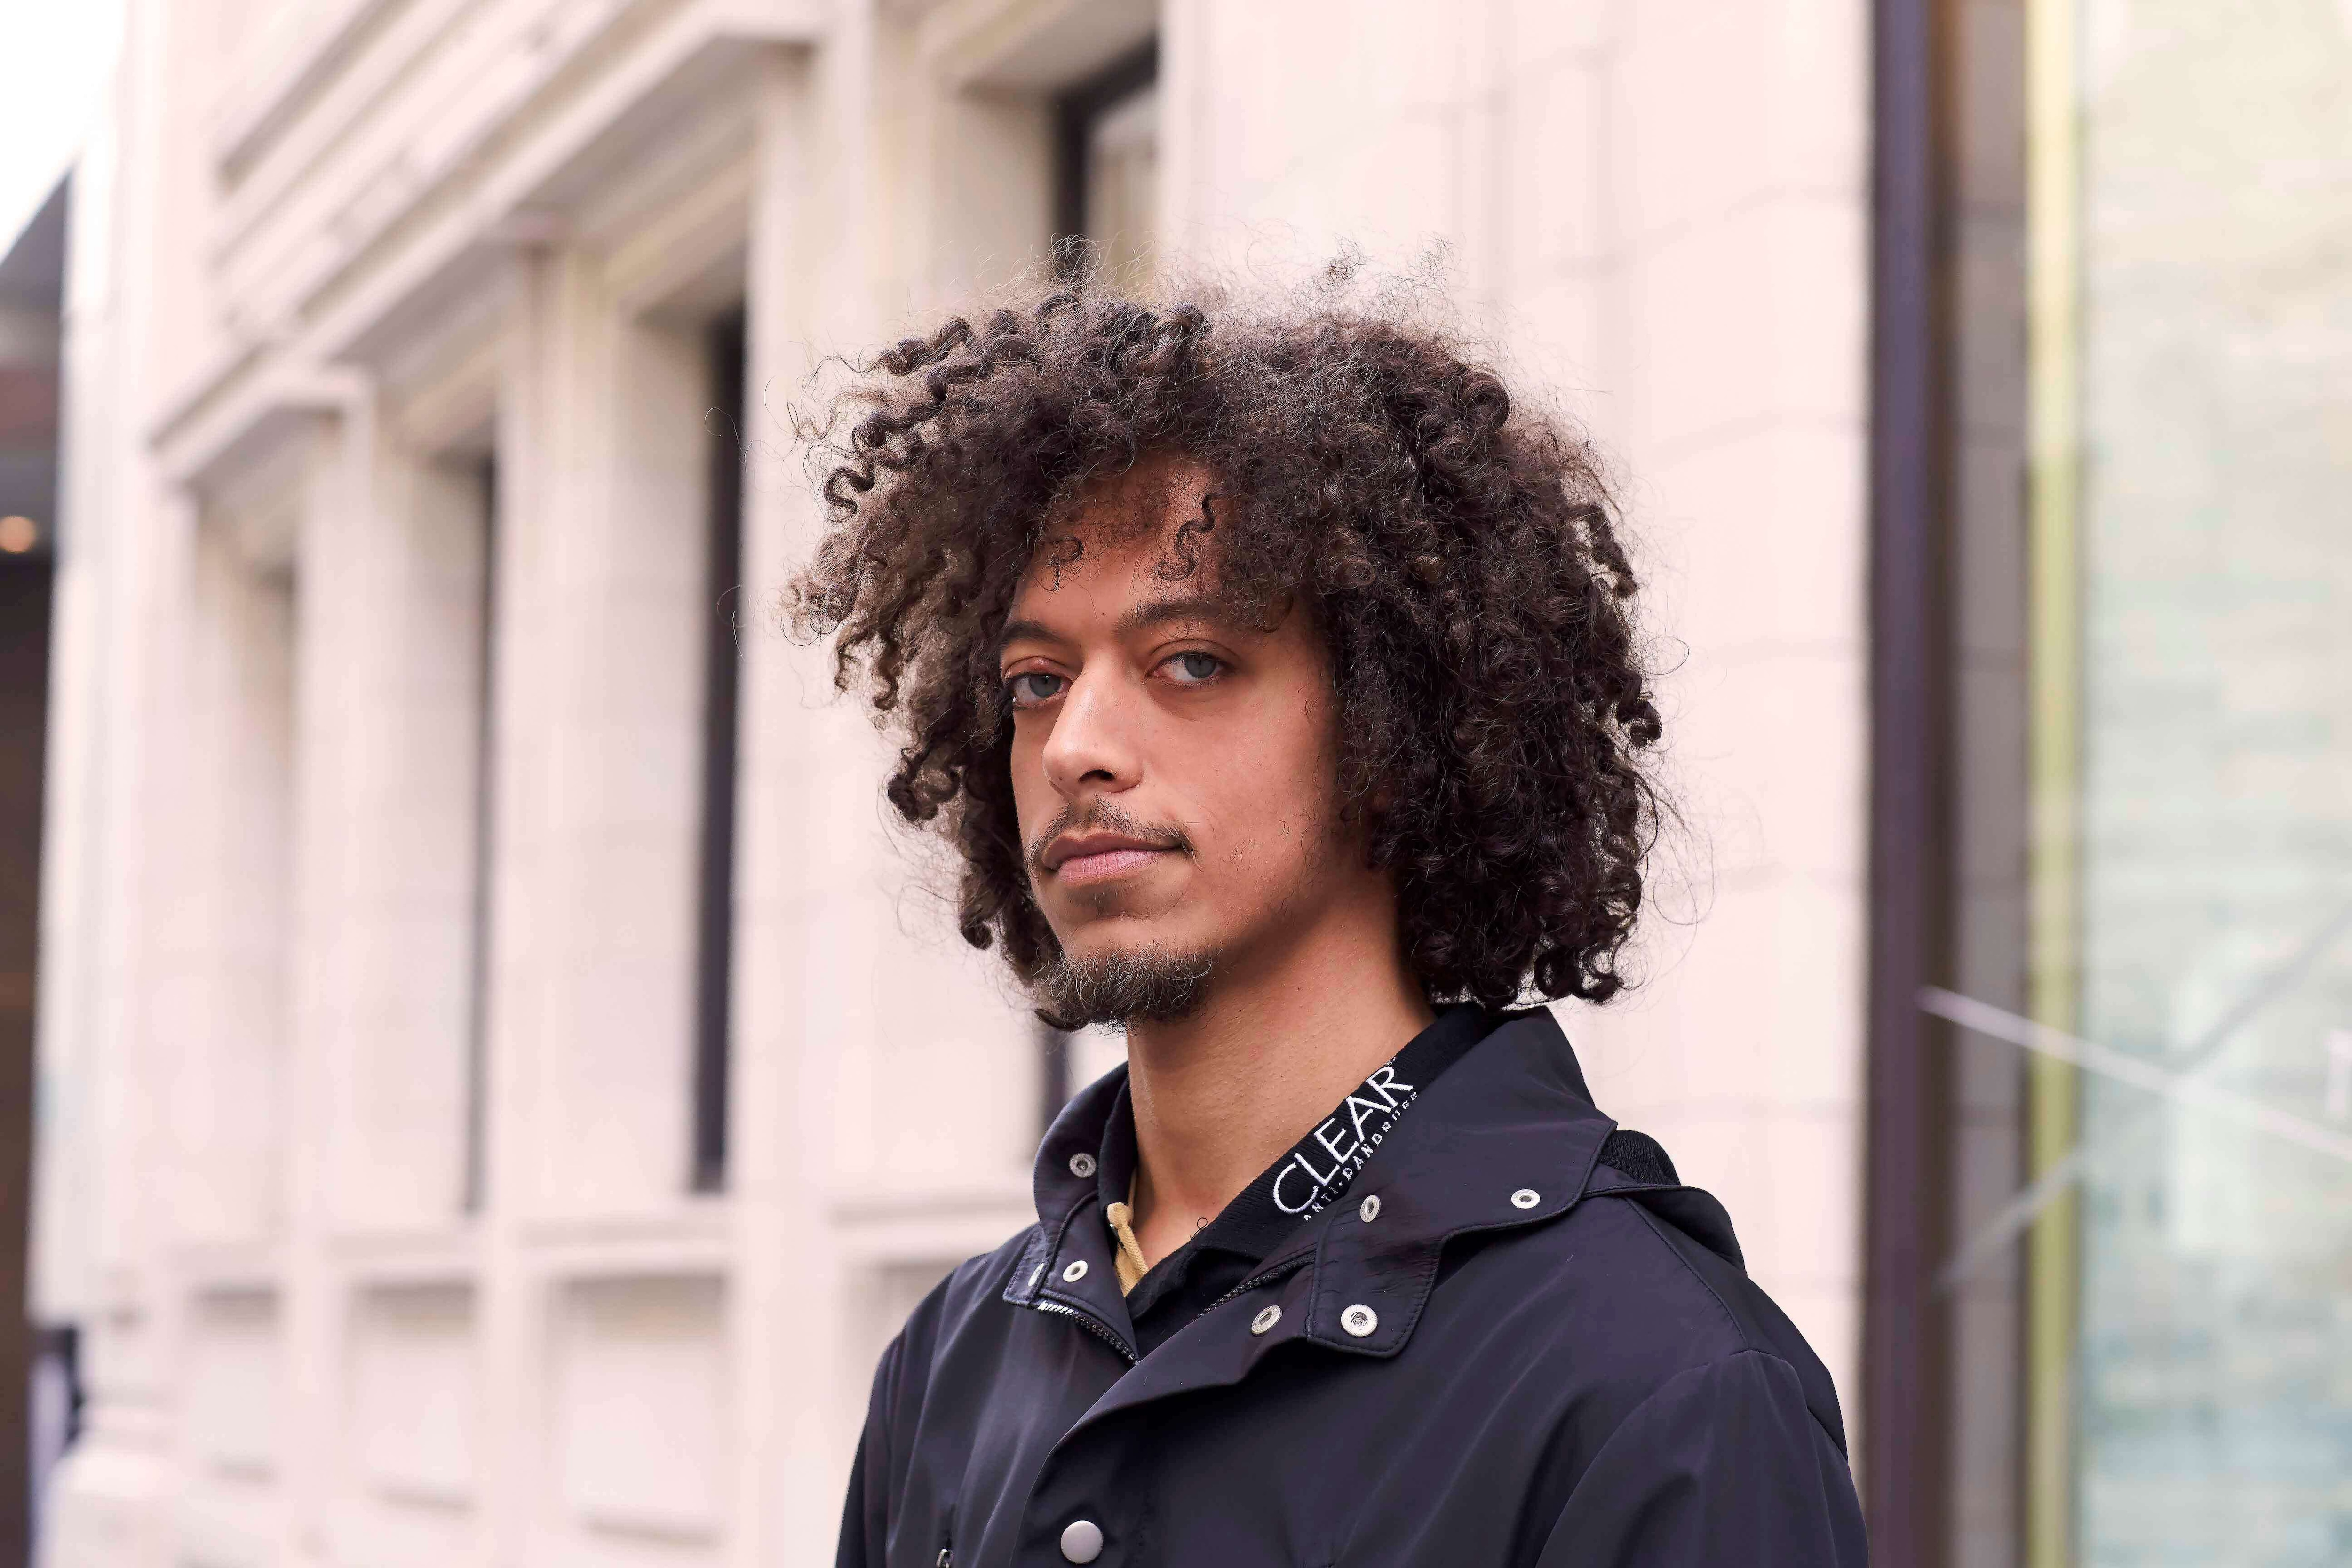 Stylish Black Men Hairstyles 9 On Trend And Modern Hair Ideas